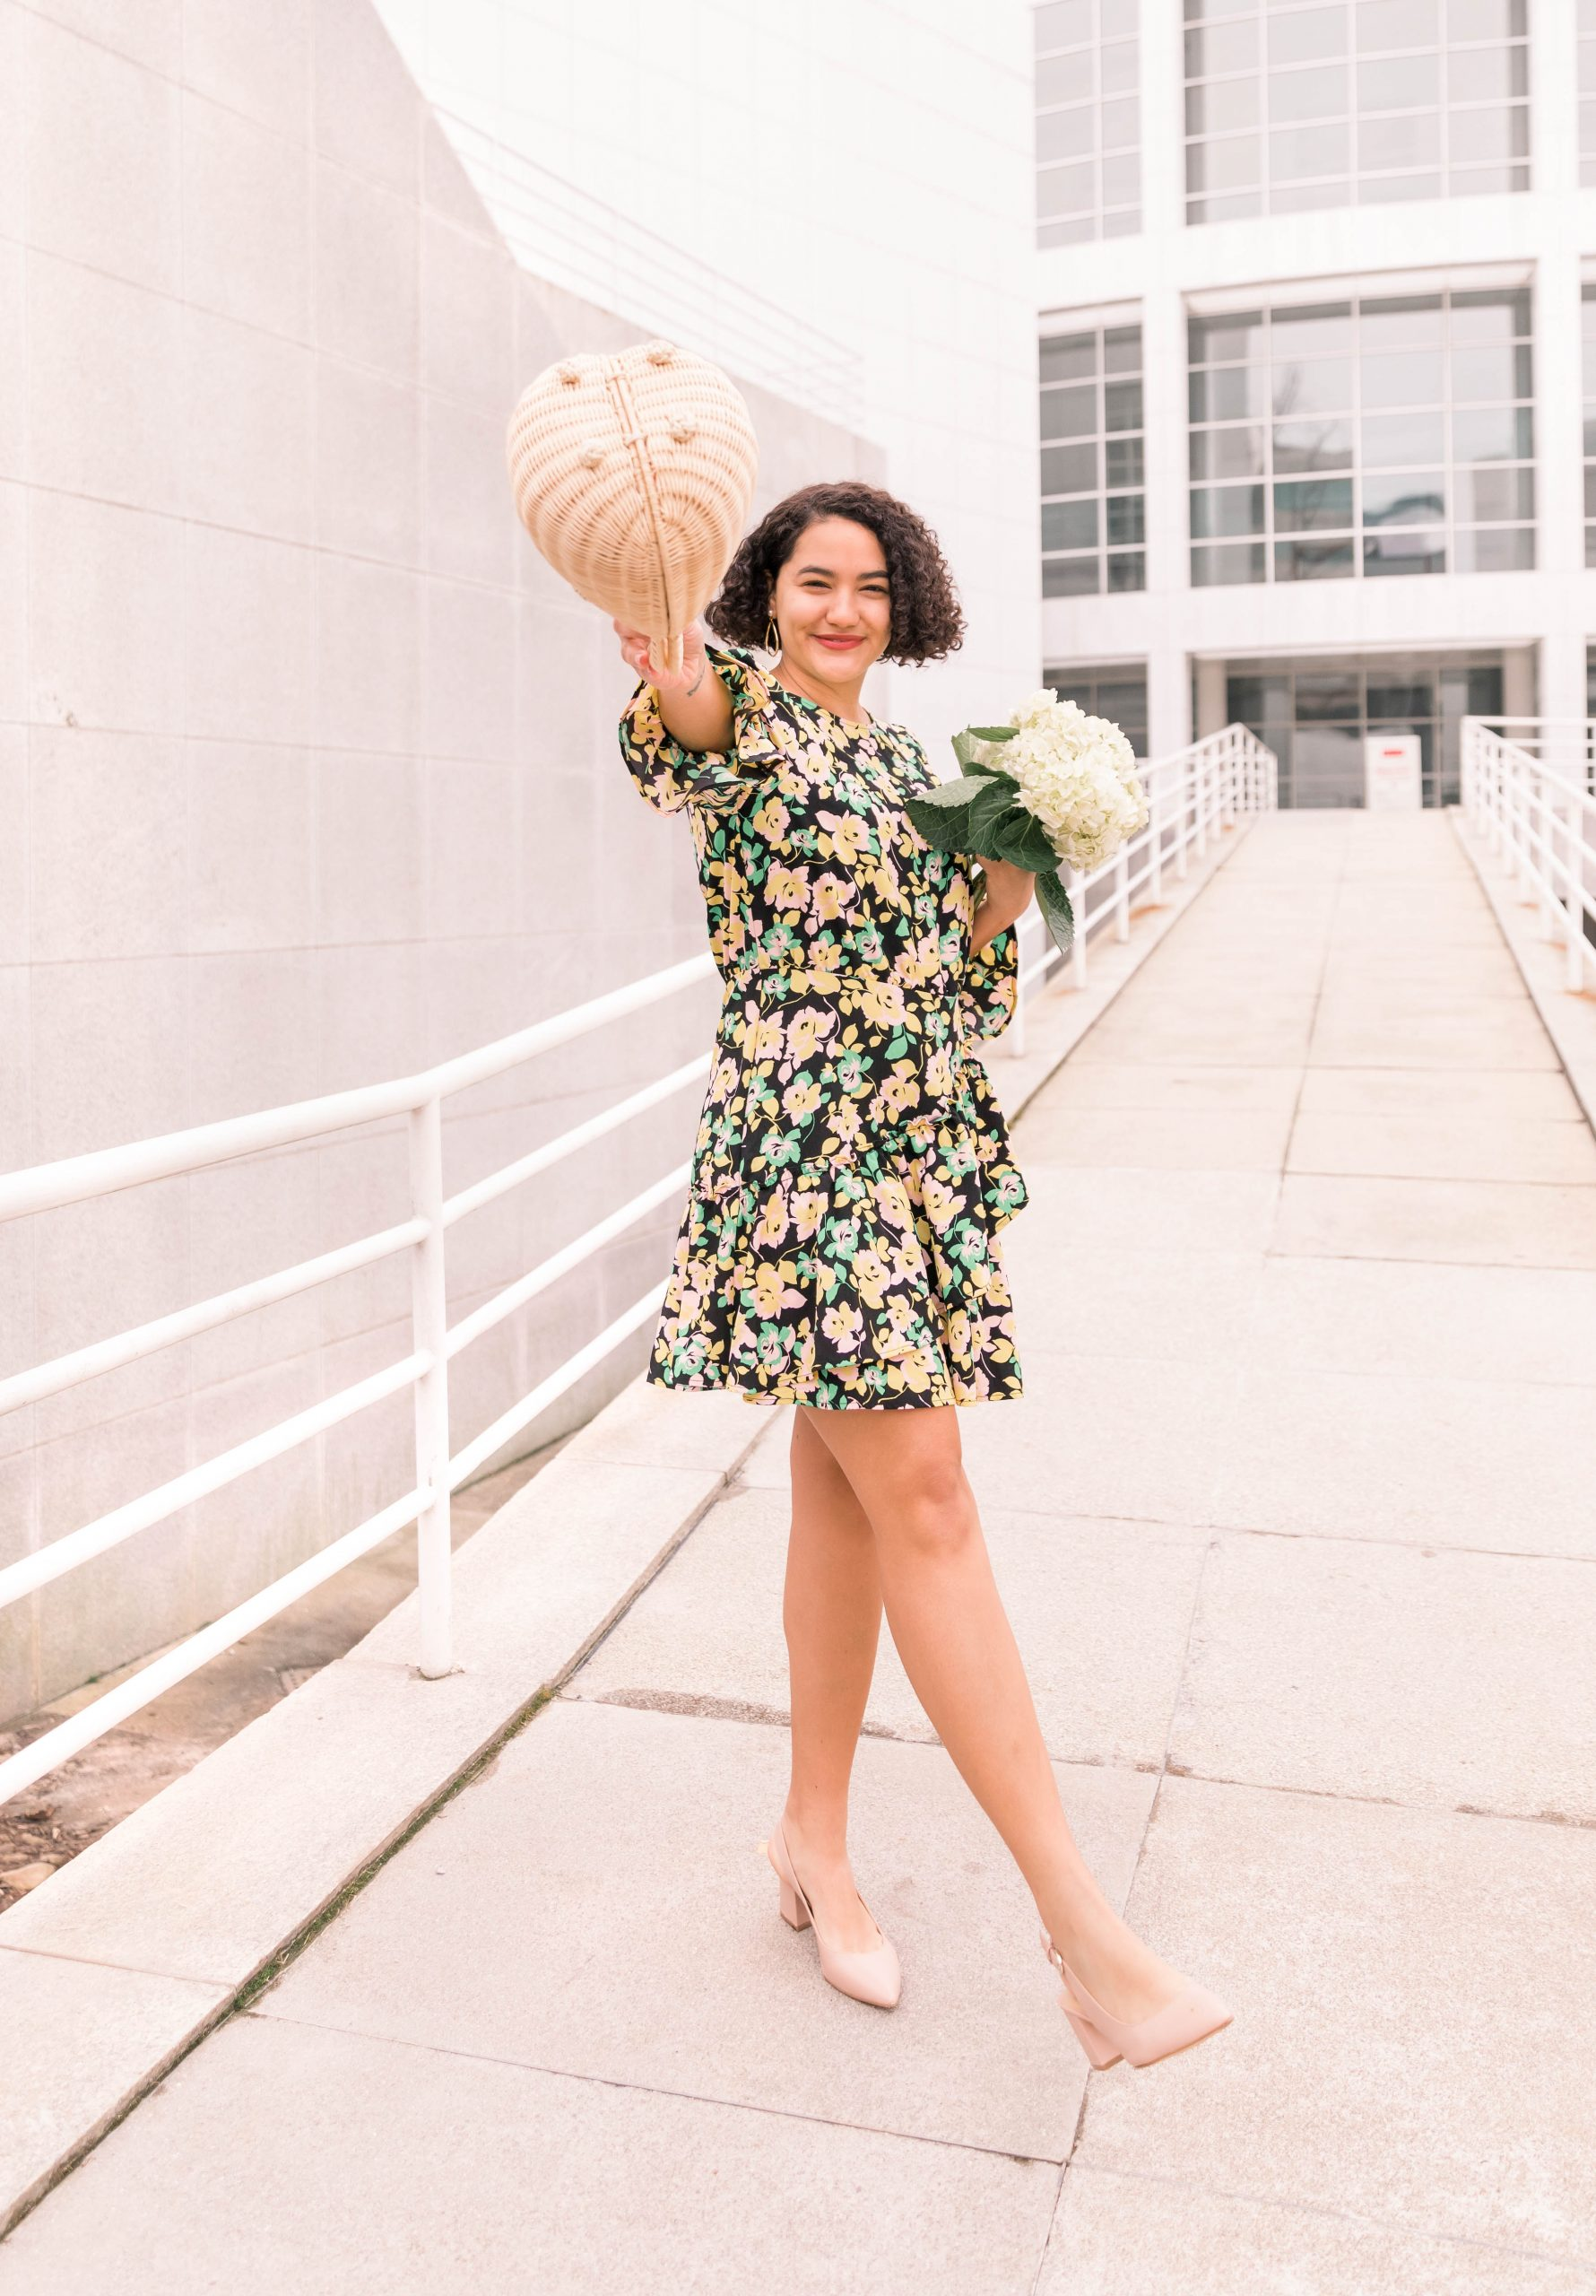 a girl wearing heels and a floral dress who is holding a woven bag and hydrangeas